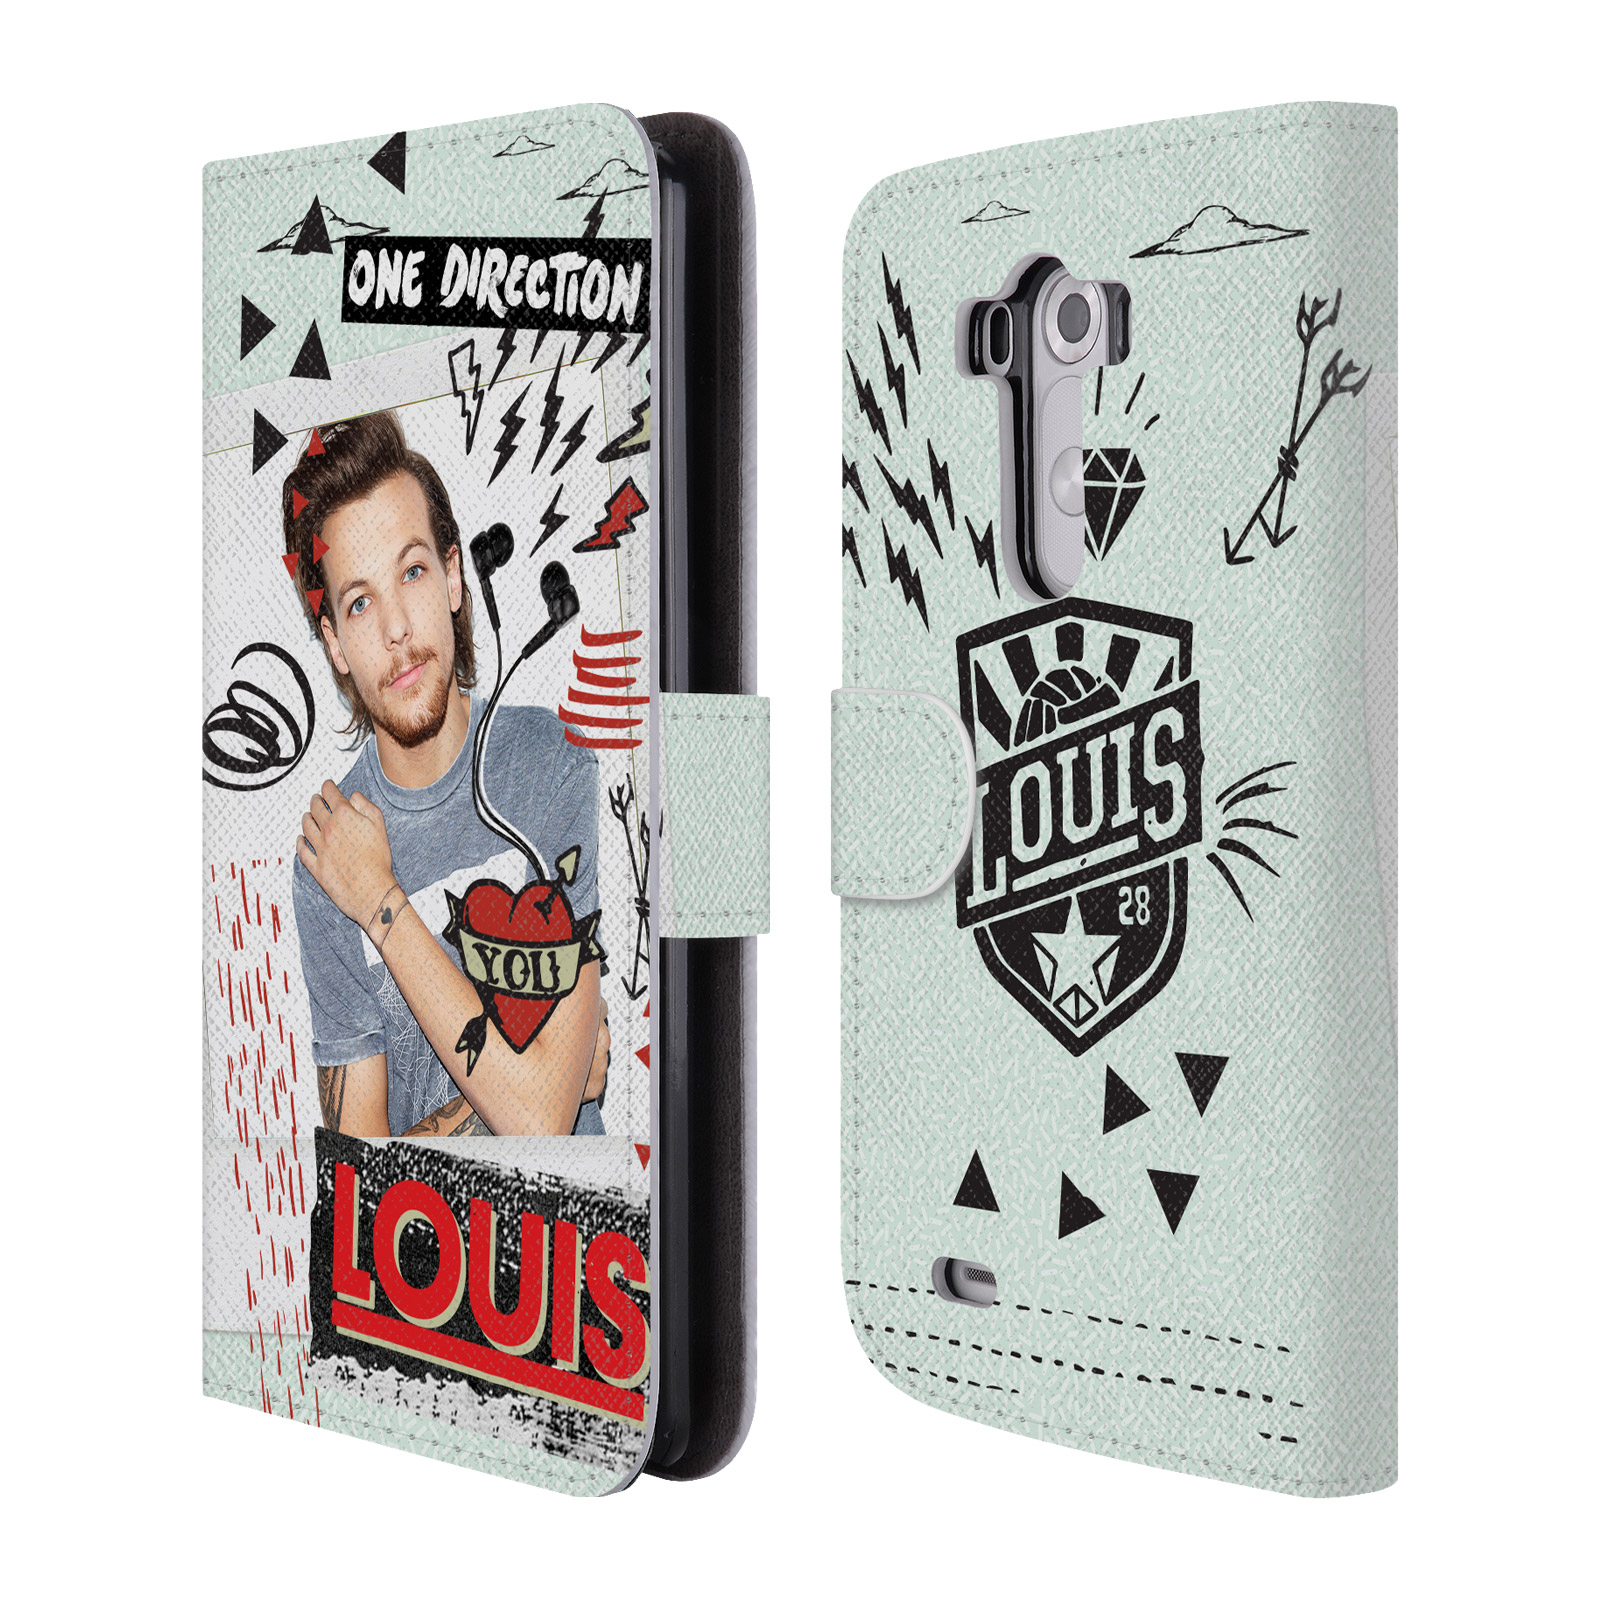 Officiel-One-Direction-1D-Midnight-Louis-cuir-Livre-etui-Pour-Telephones-LG-1